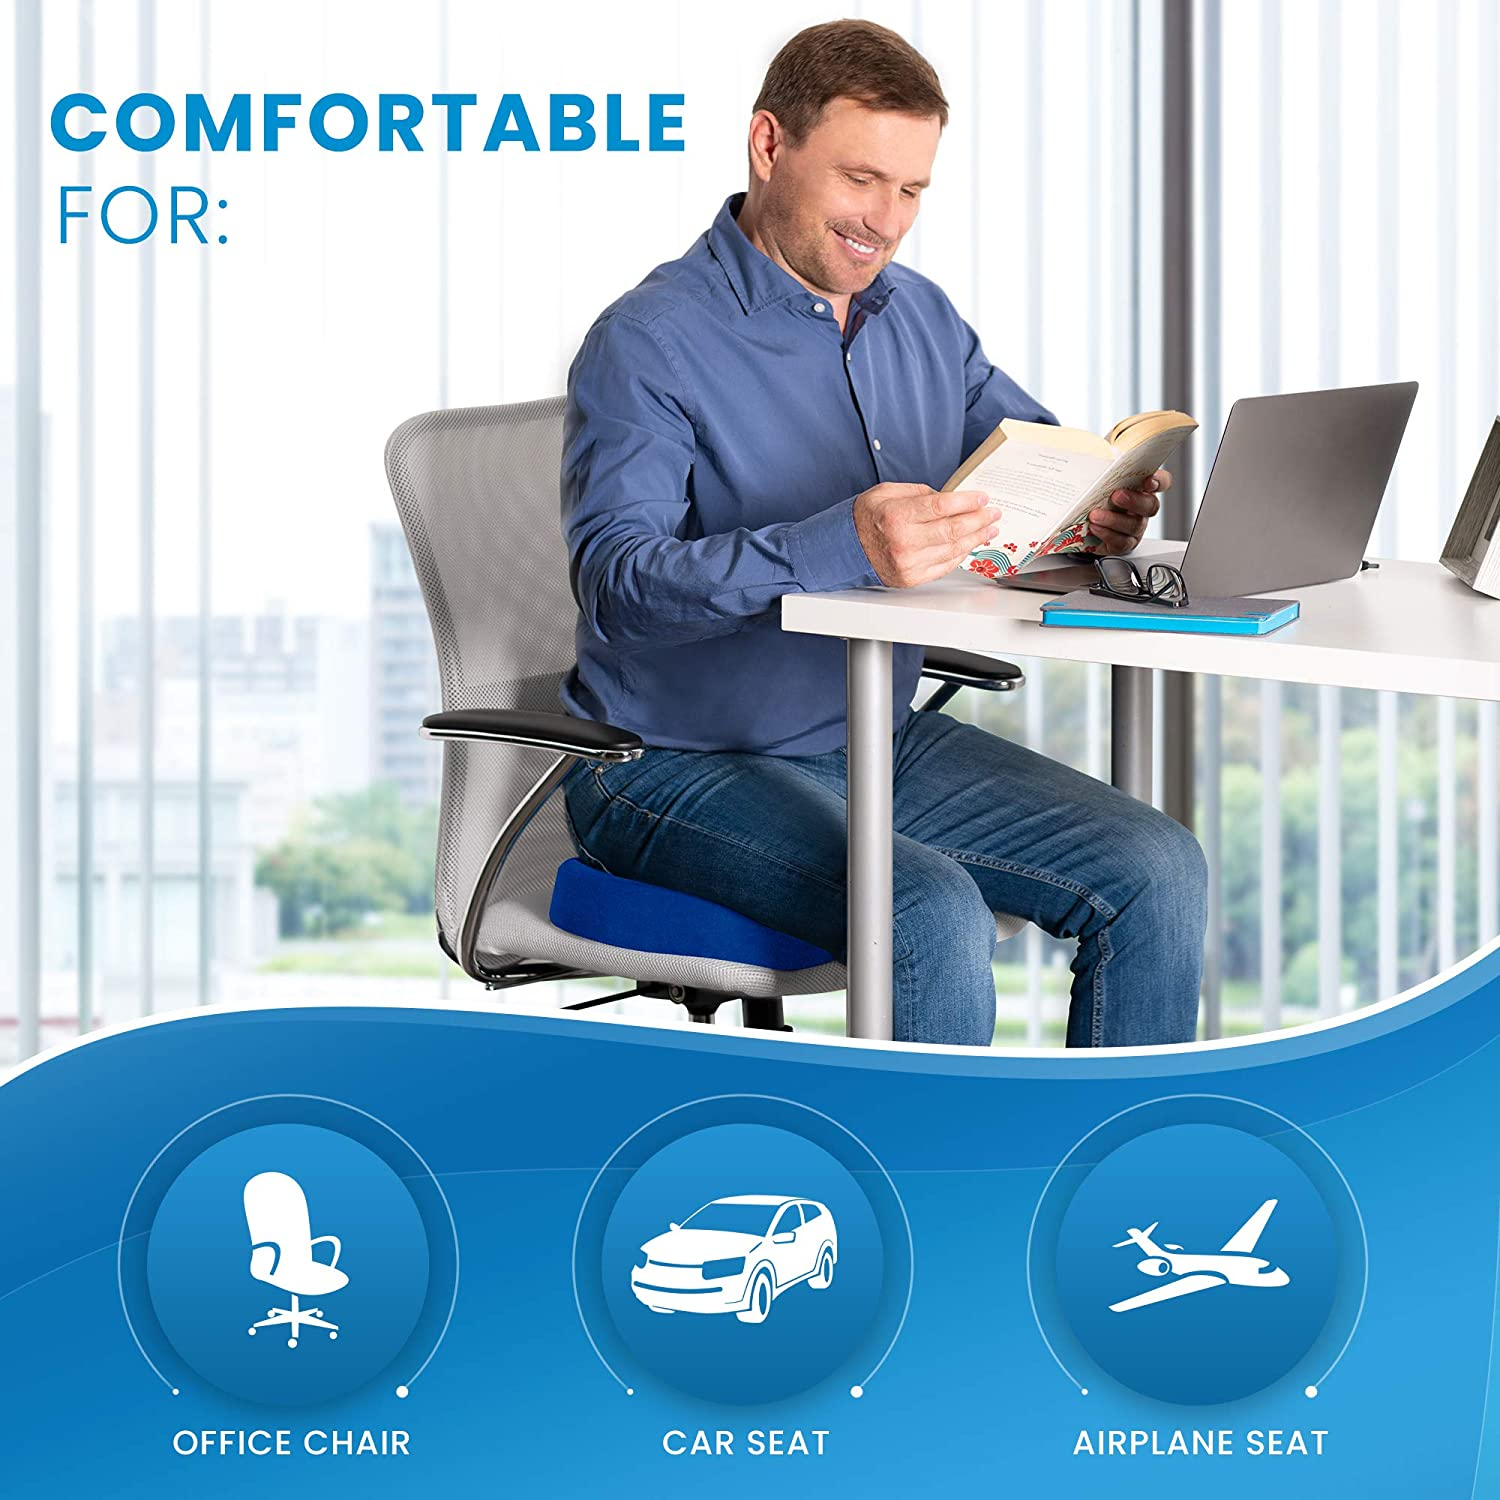 Blue Sciatica Pillow for Sitting Tailbone Pain Relief Cushion Everlasting Comfort Seat Cushion for Office Chair Coccyx Cushion